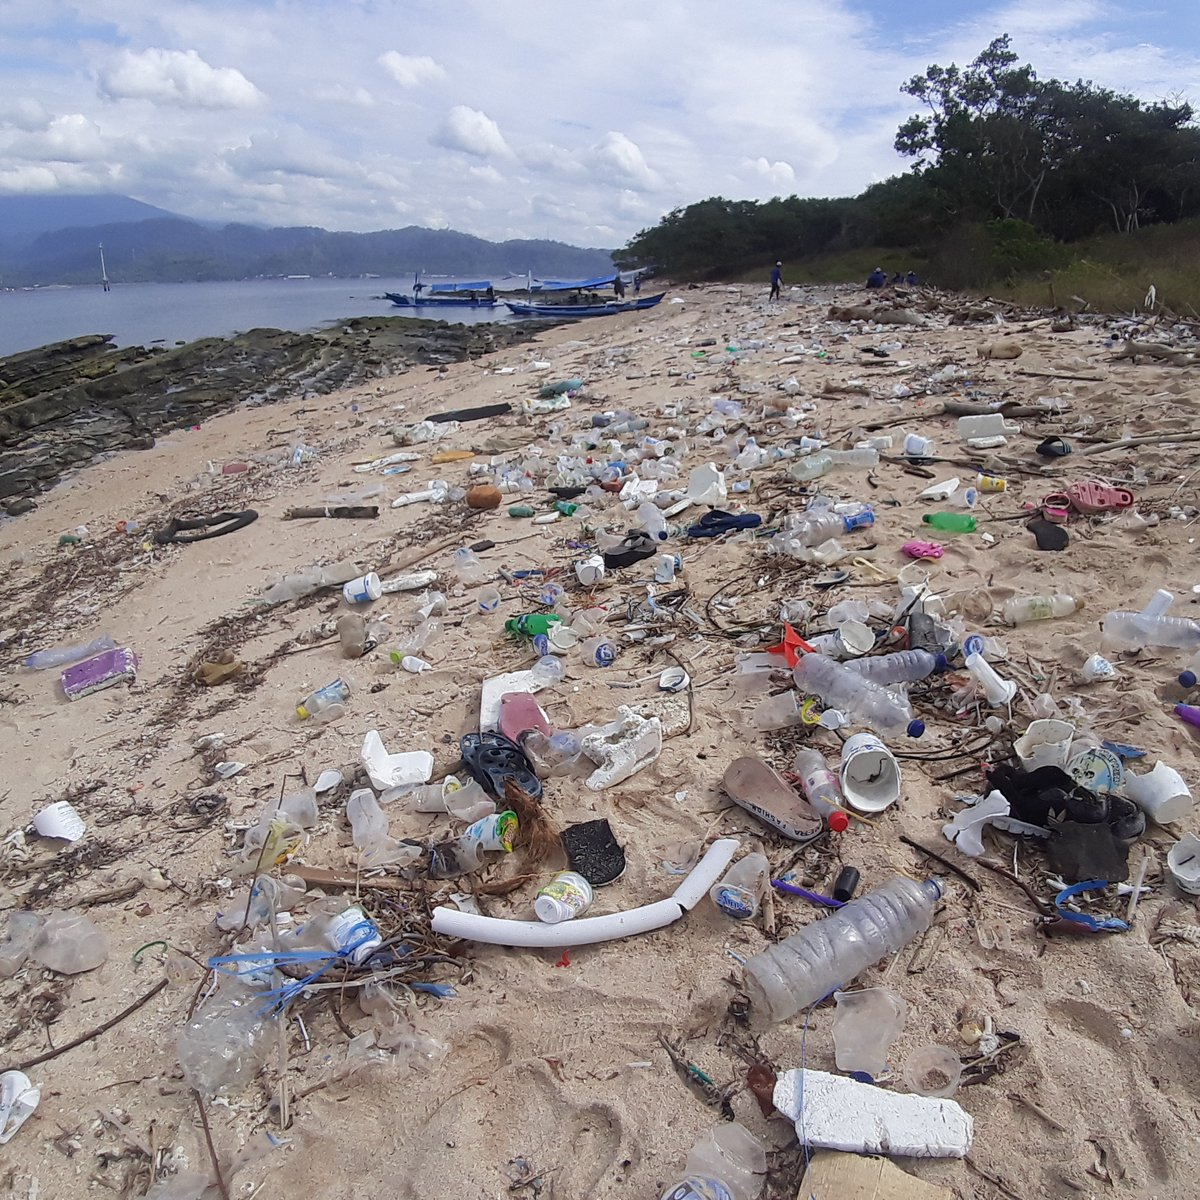 Before and After on a coast in West Bali National Park.⁠ ⁠ Thanks to all of our supporters, Team Bali has been able to remove over 140,829 pounds of trash from the oceans, coastlines, and rivers so far this month!⁠ ⁠